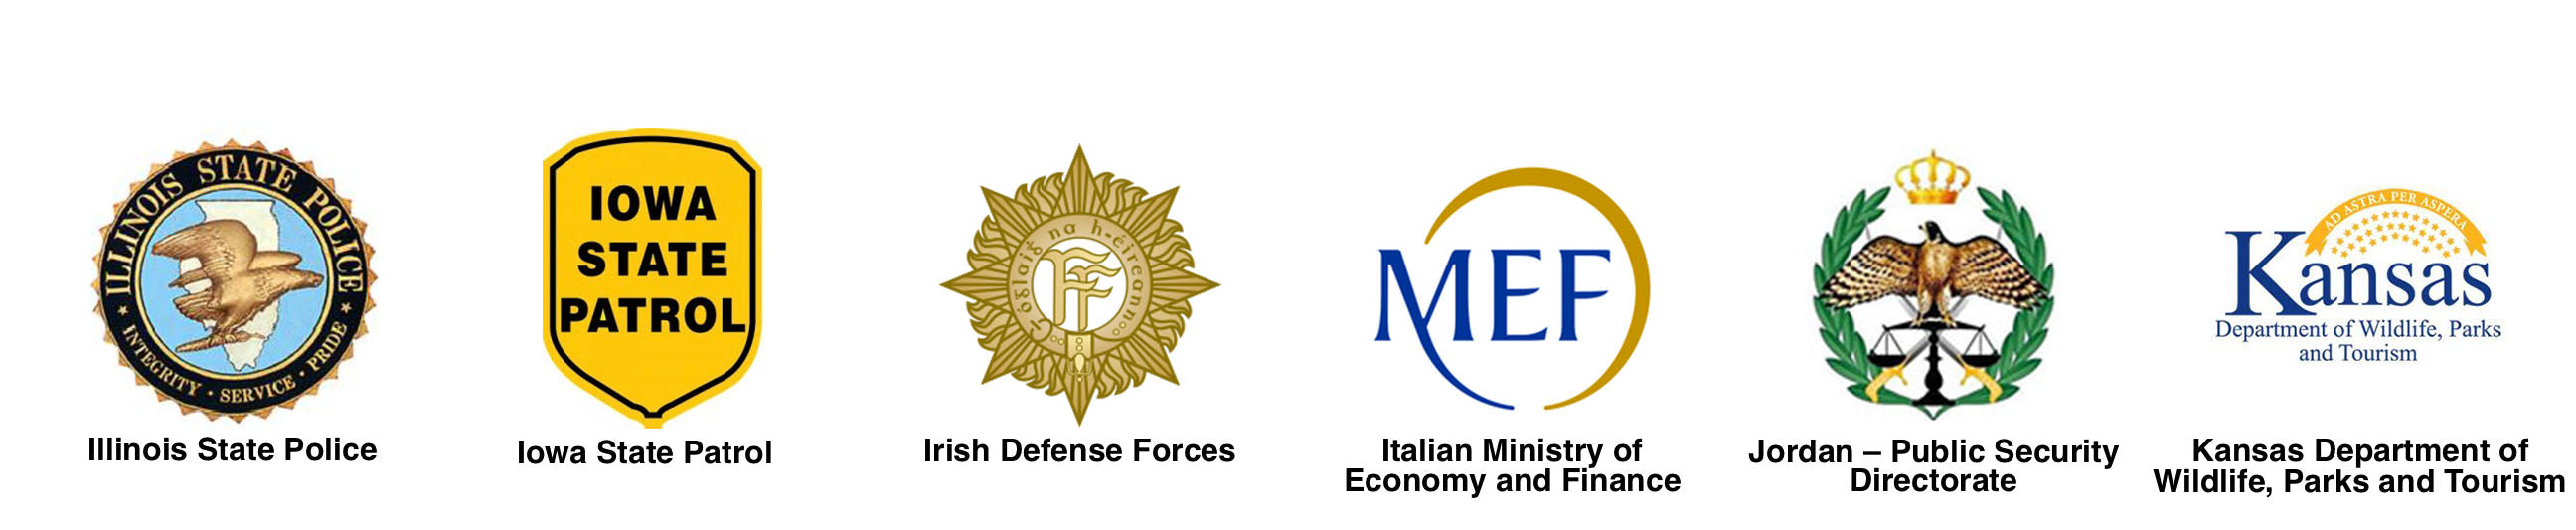 Illinois State Police, Iowa State Patrol, Irish Defense Forces, Italian Ministry of Economy and Finance, Jordan Public Security Directorate, Kansas Department of Wildlife Parks and Tourism